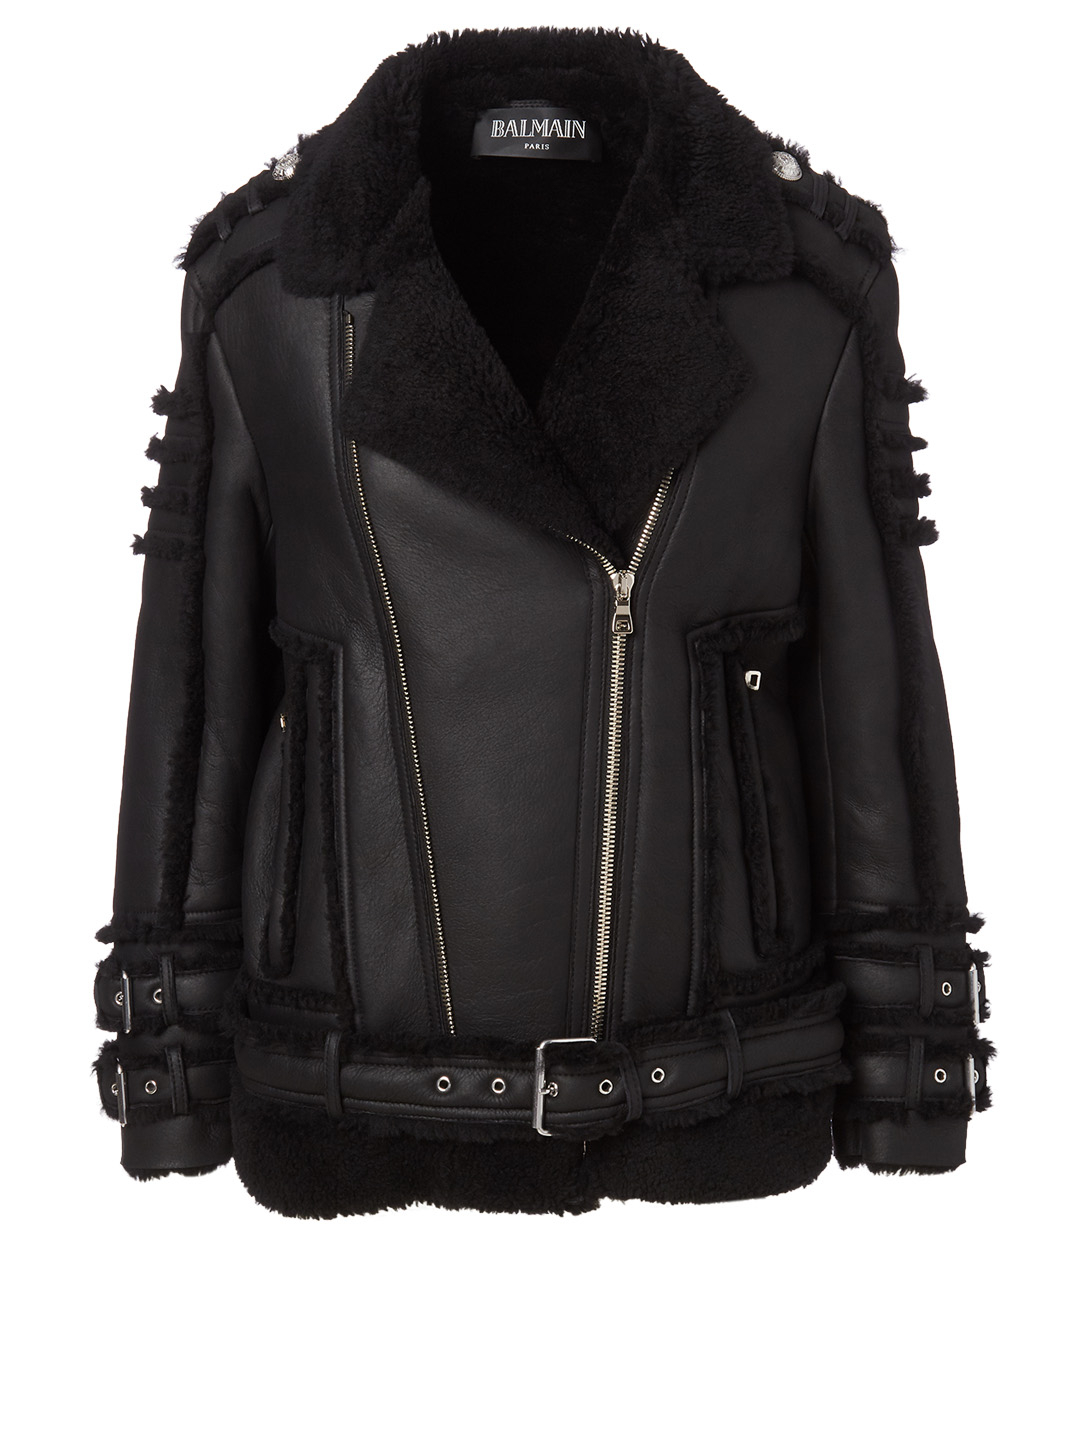 BALMAIN Perfecto Shearling Jacket Women's Black